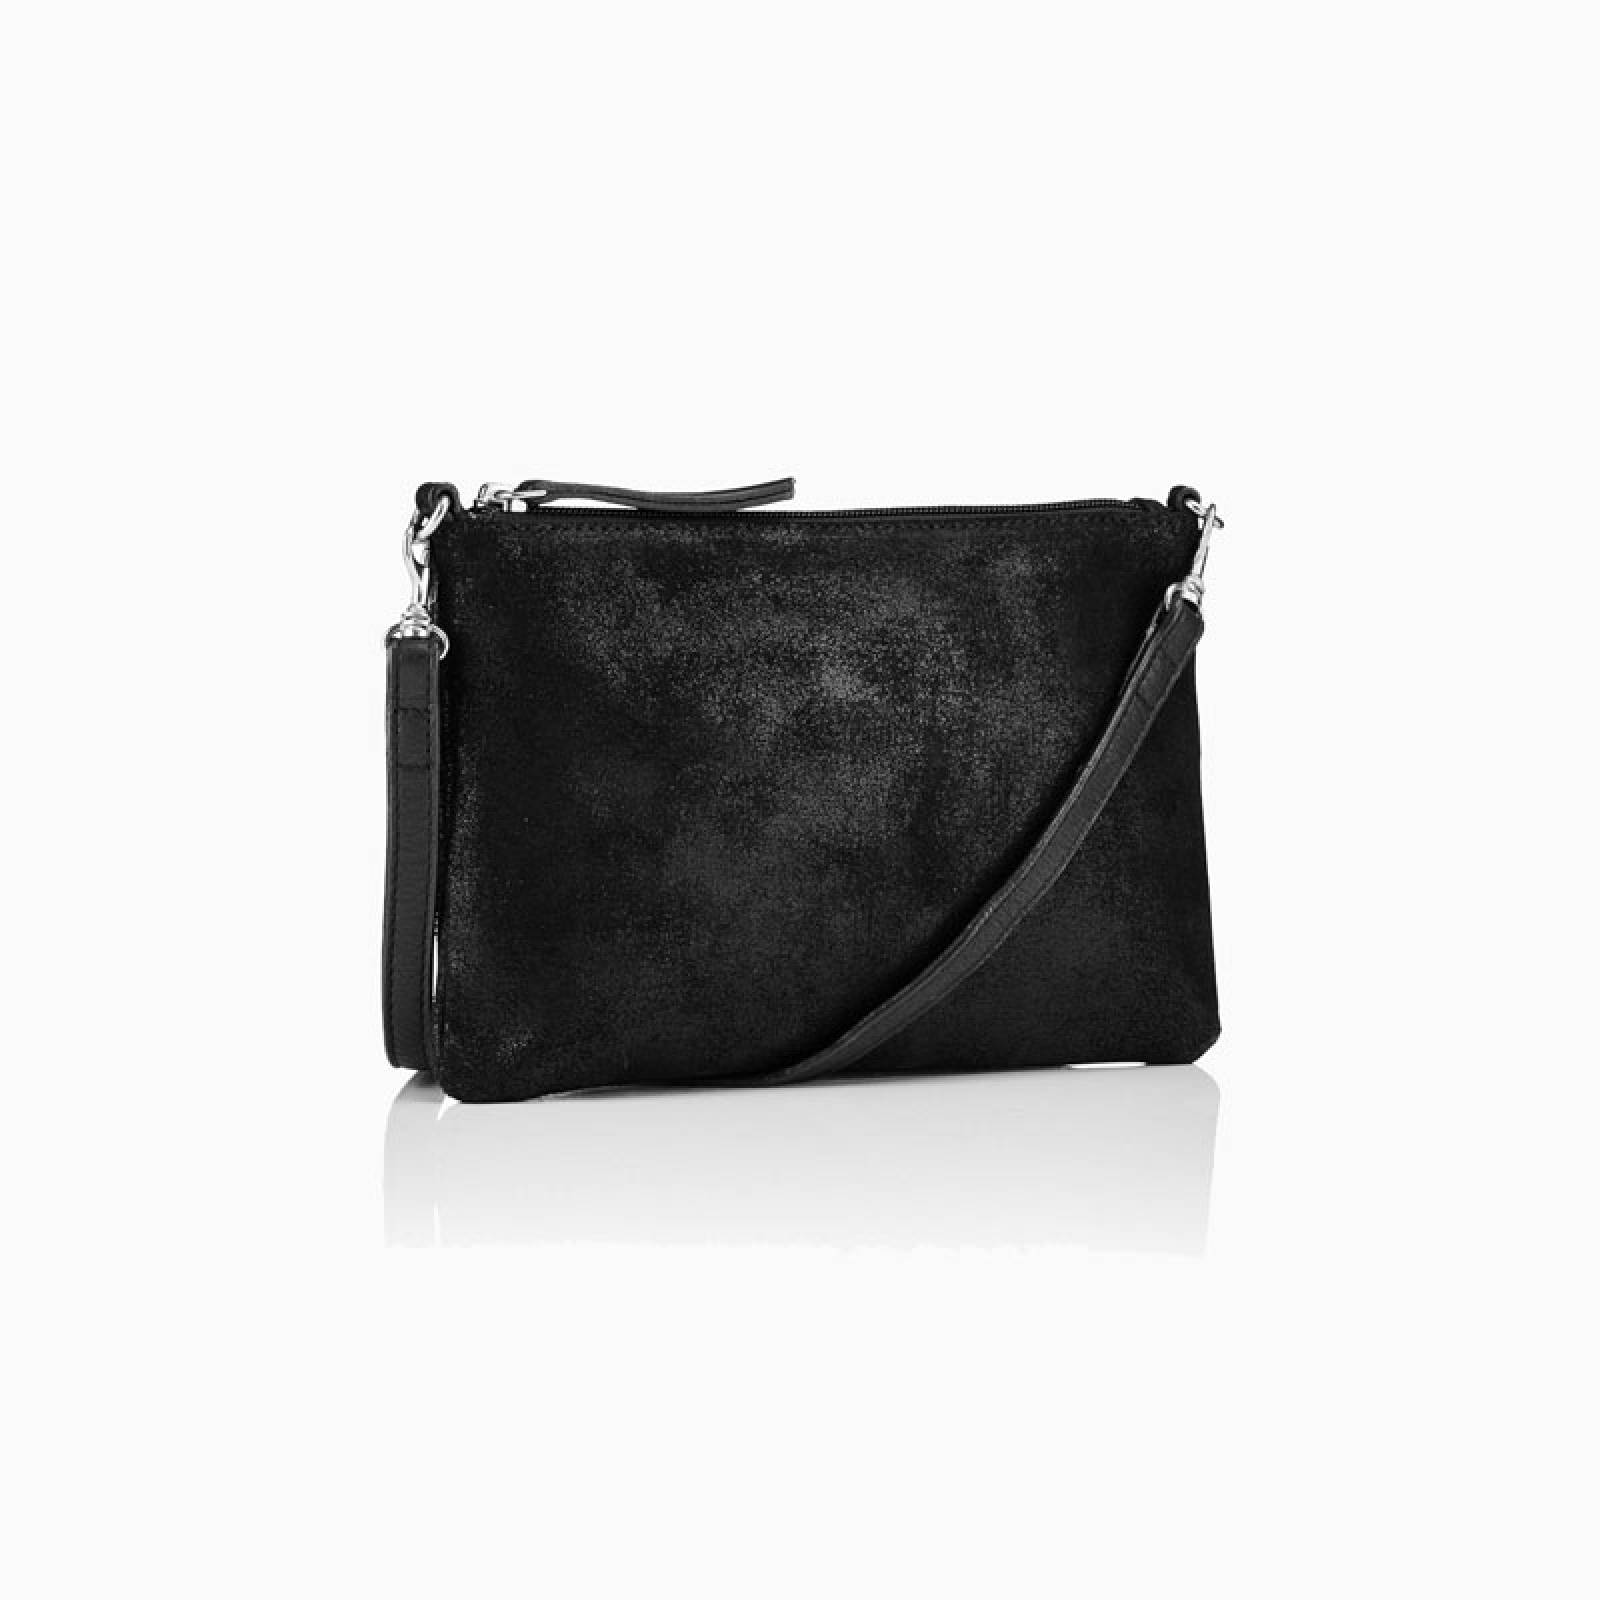 Small Leather Crossbody Bag In Black